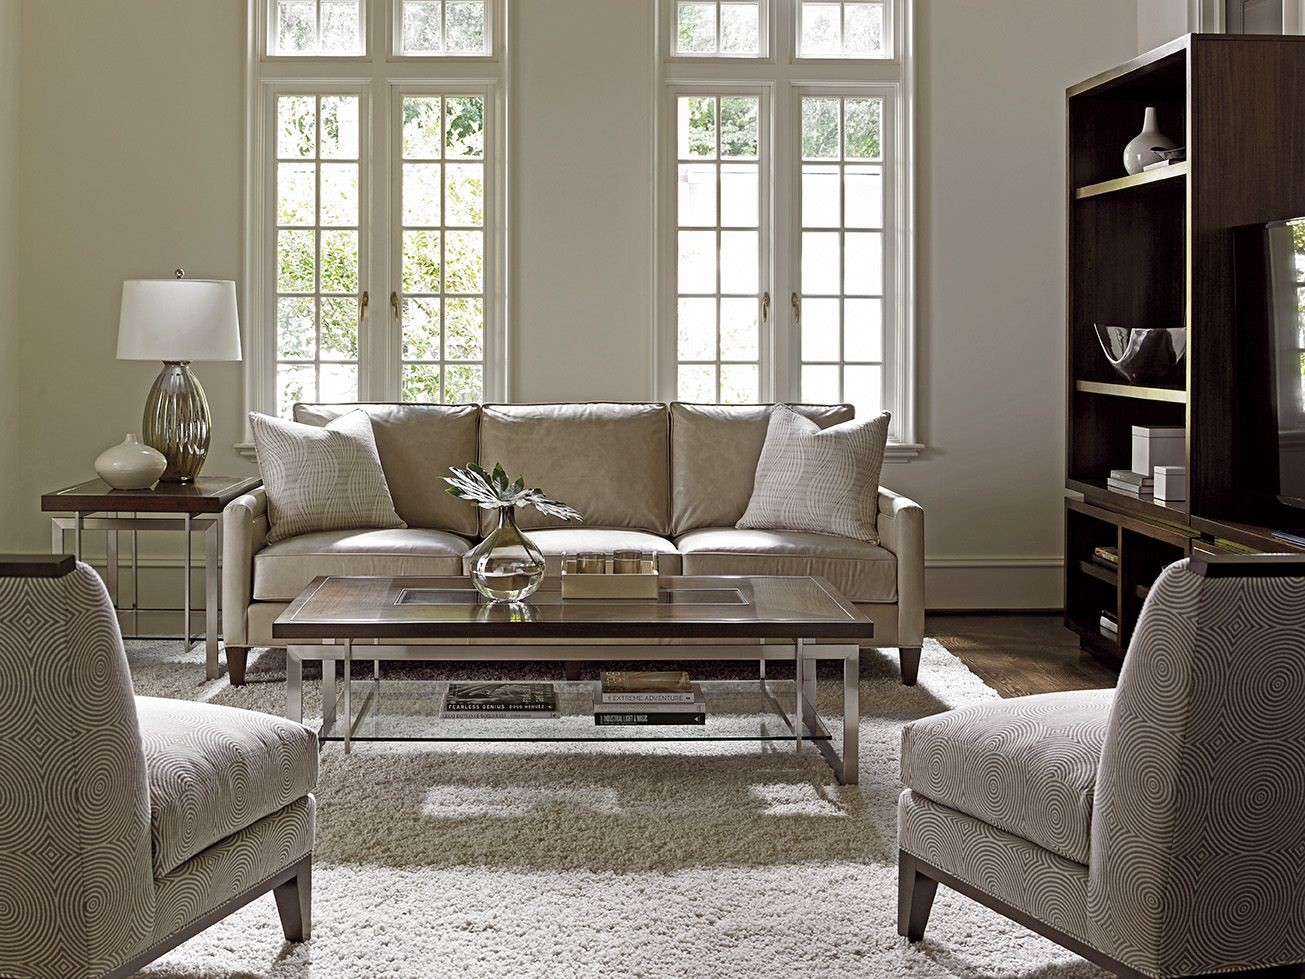 Macarthur Park Foxboro Gray Leather Living Room Set From